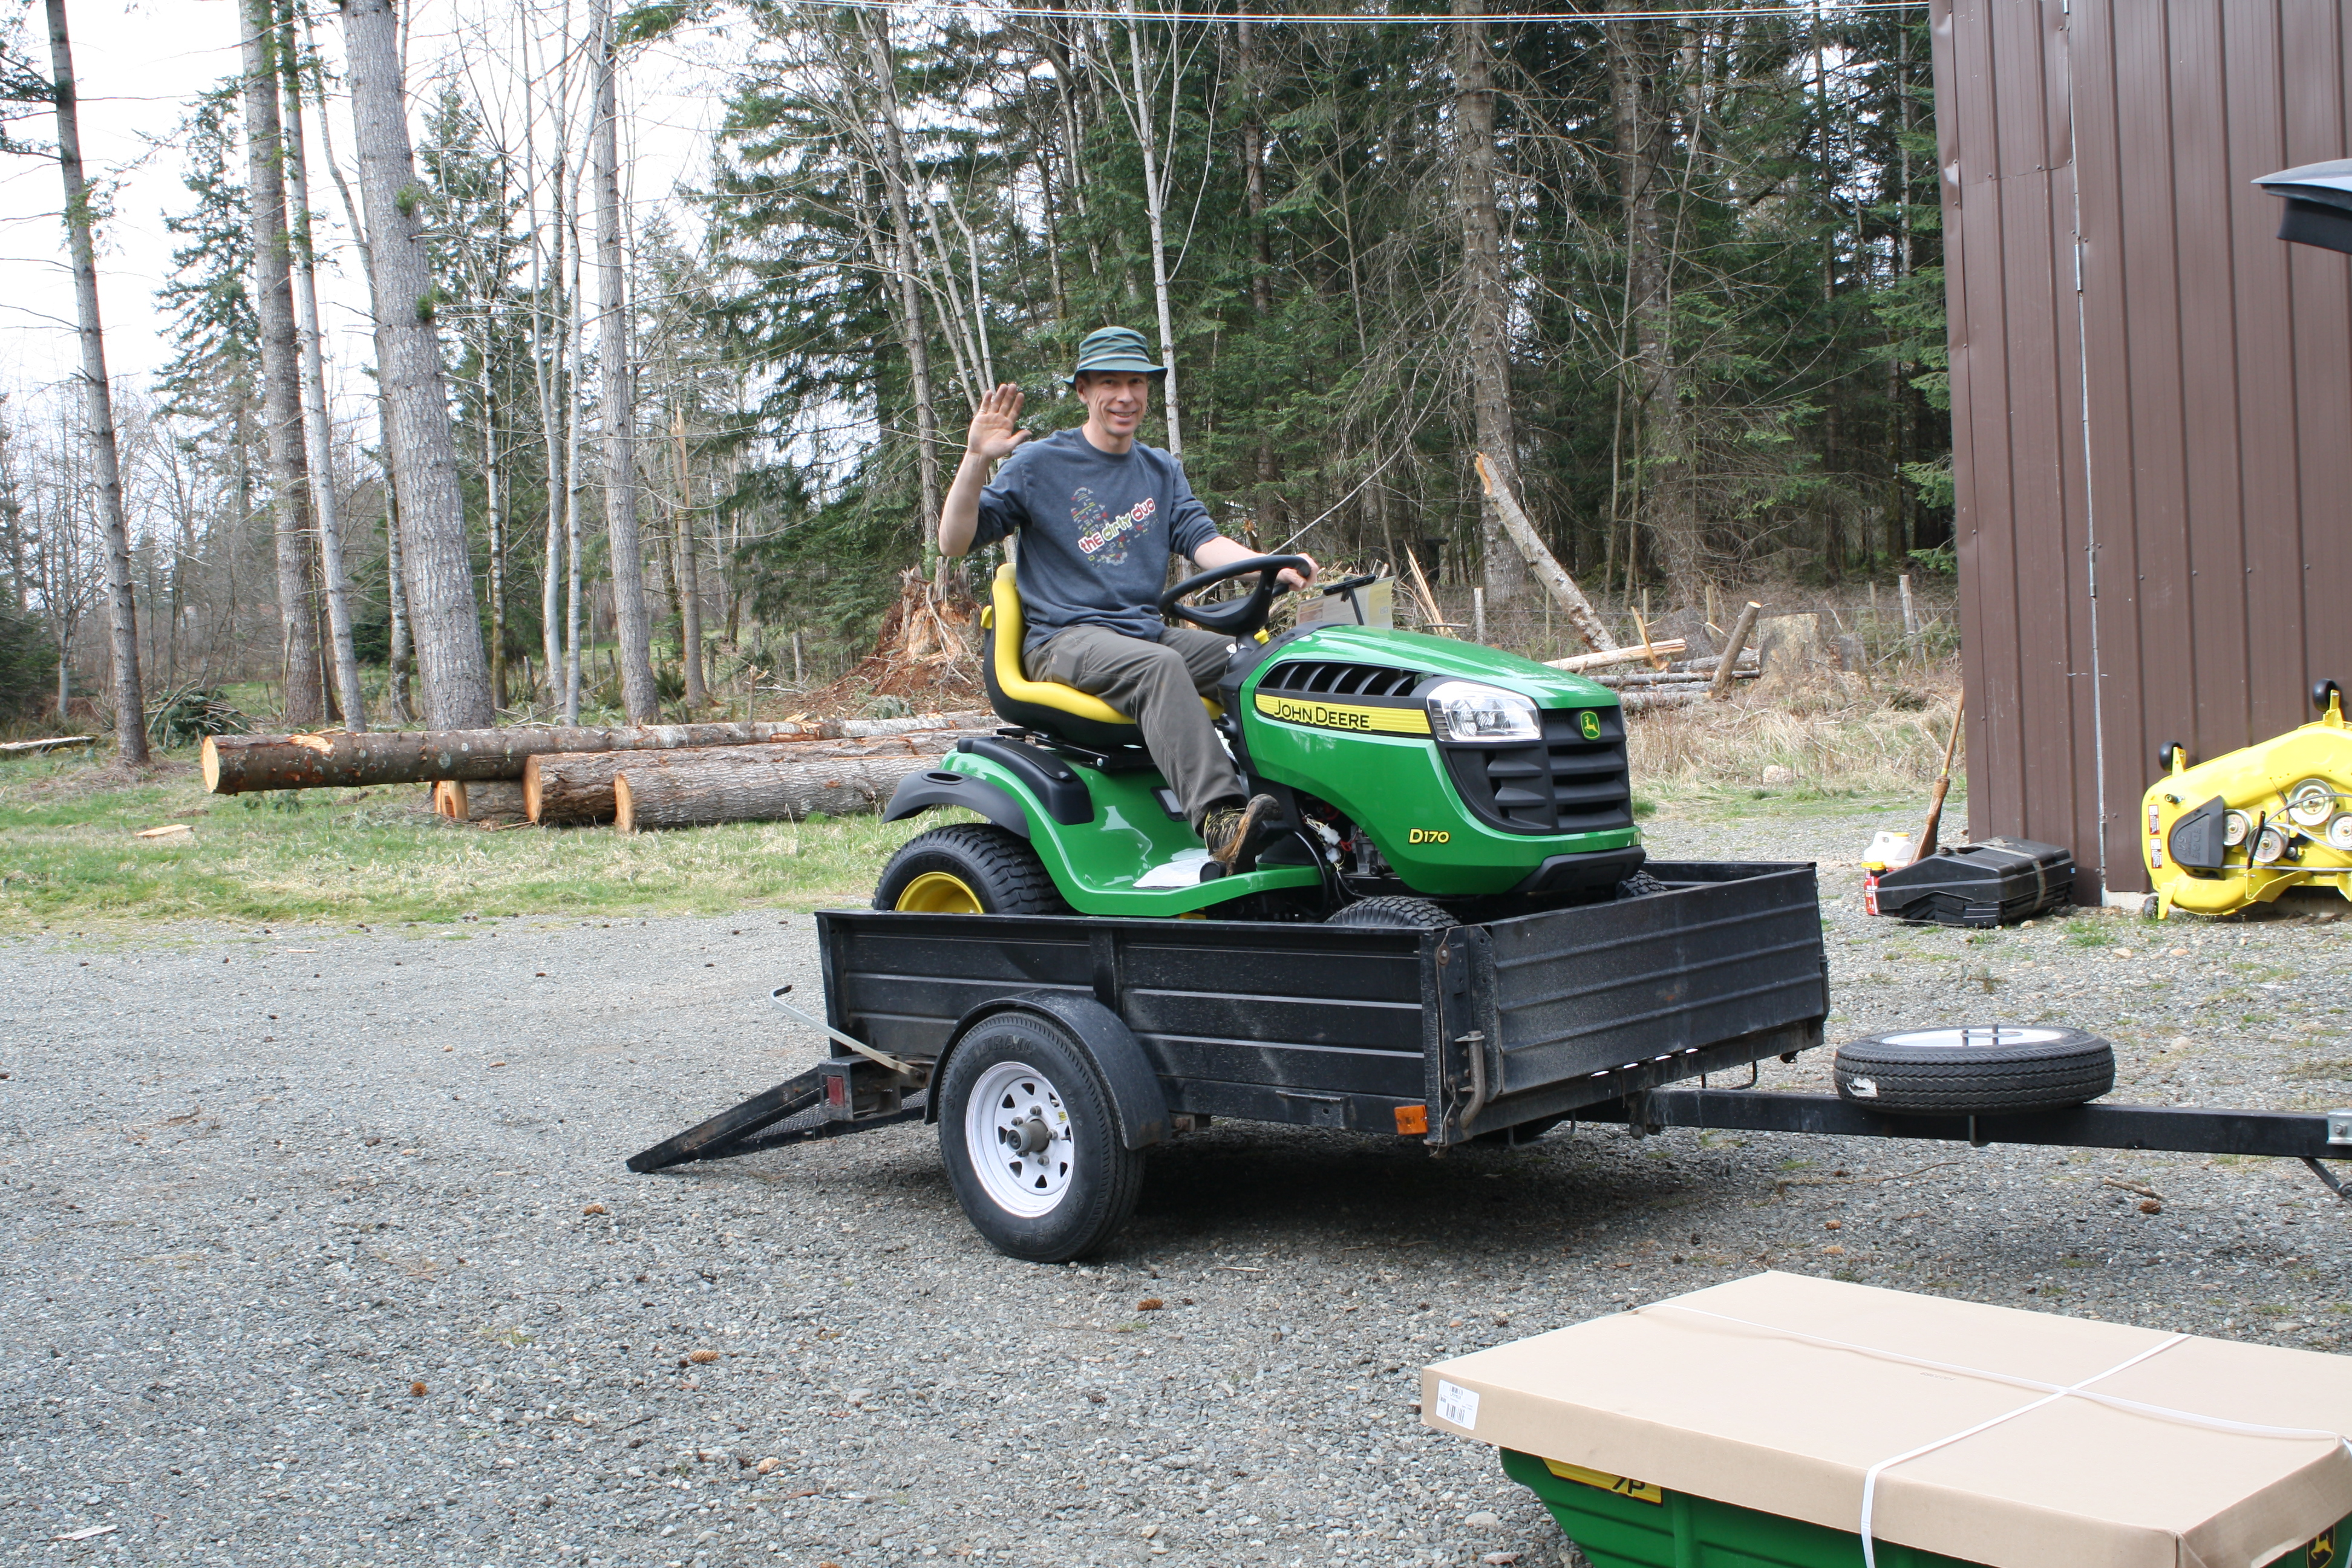 The Essential Rider Mower Tractor